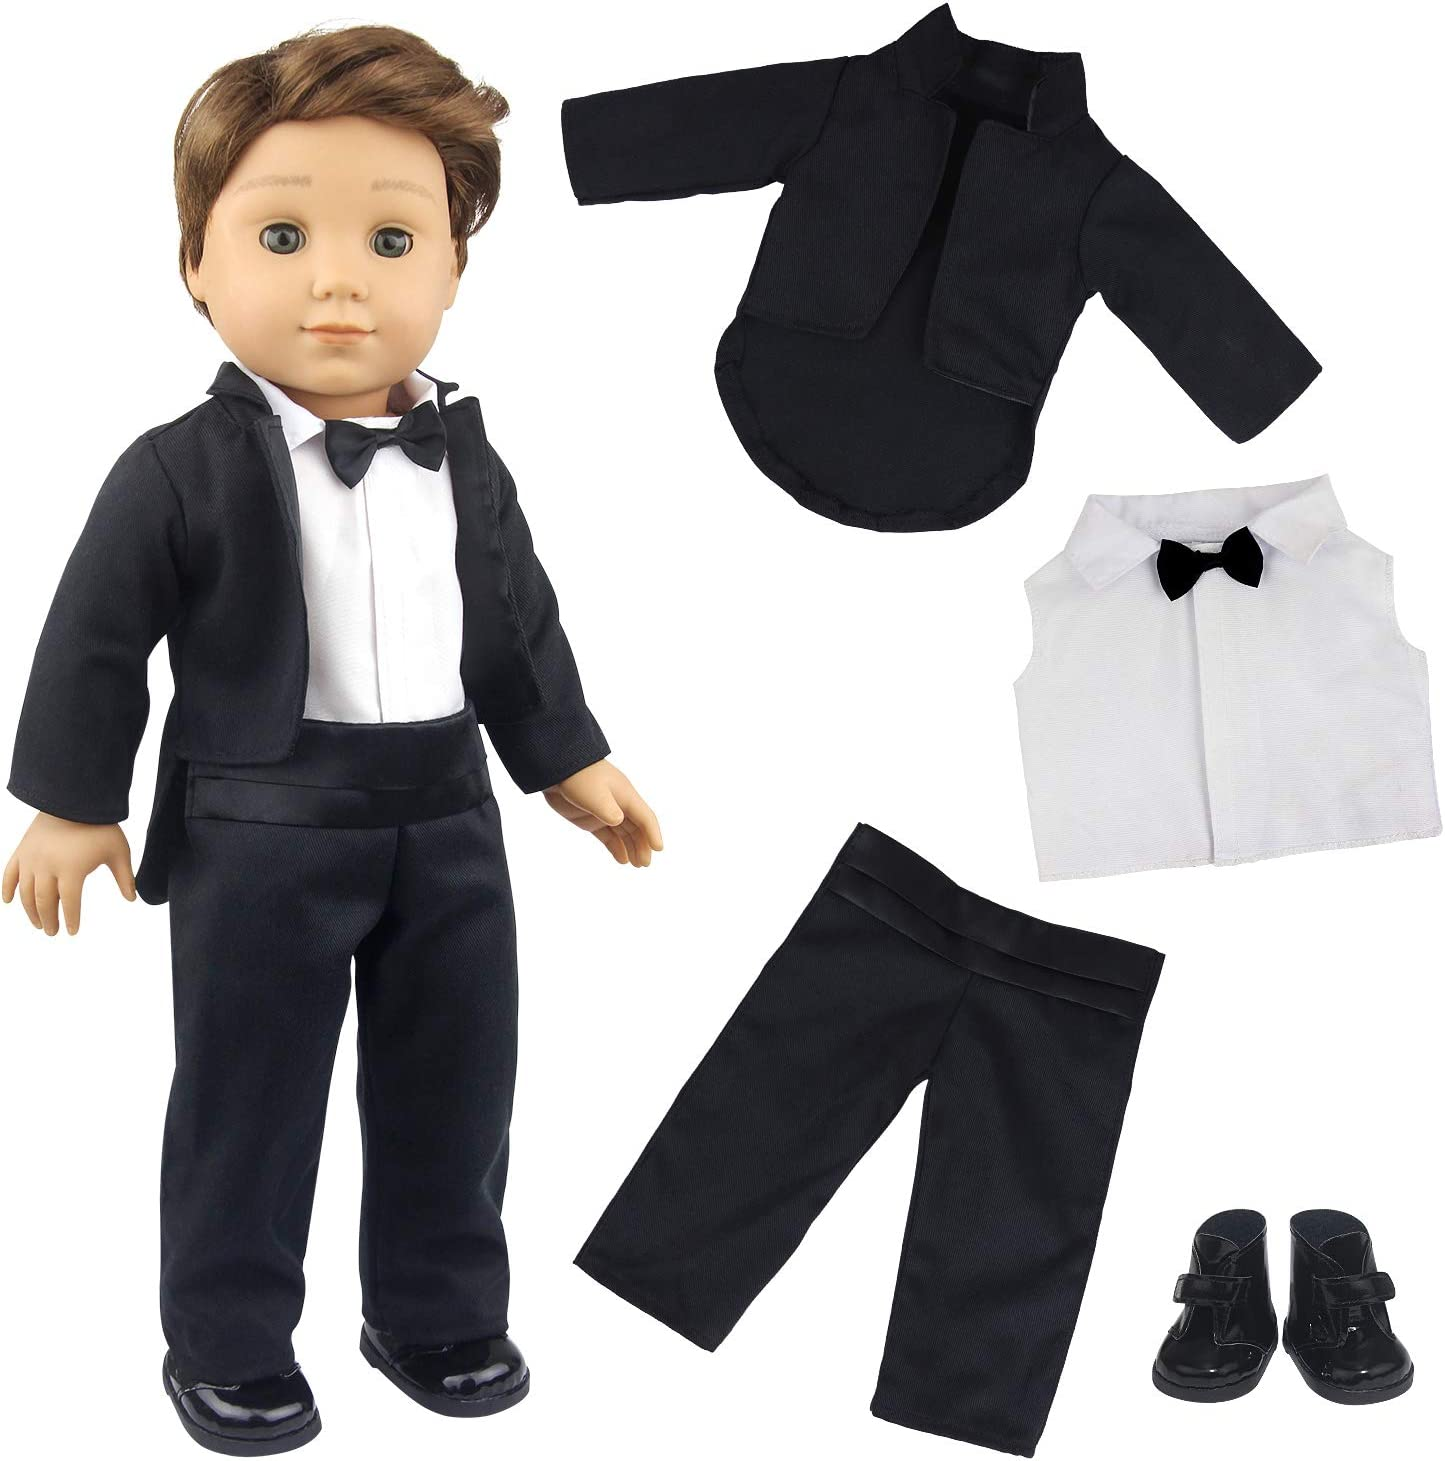 Toddler baby boys clothing outfits Shirt+pants wedding party tuxedo boys Clothes